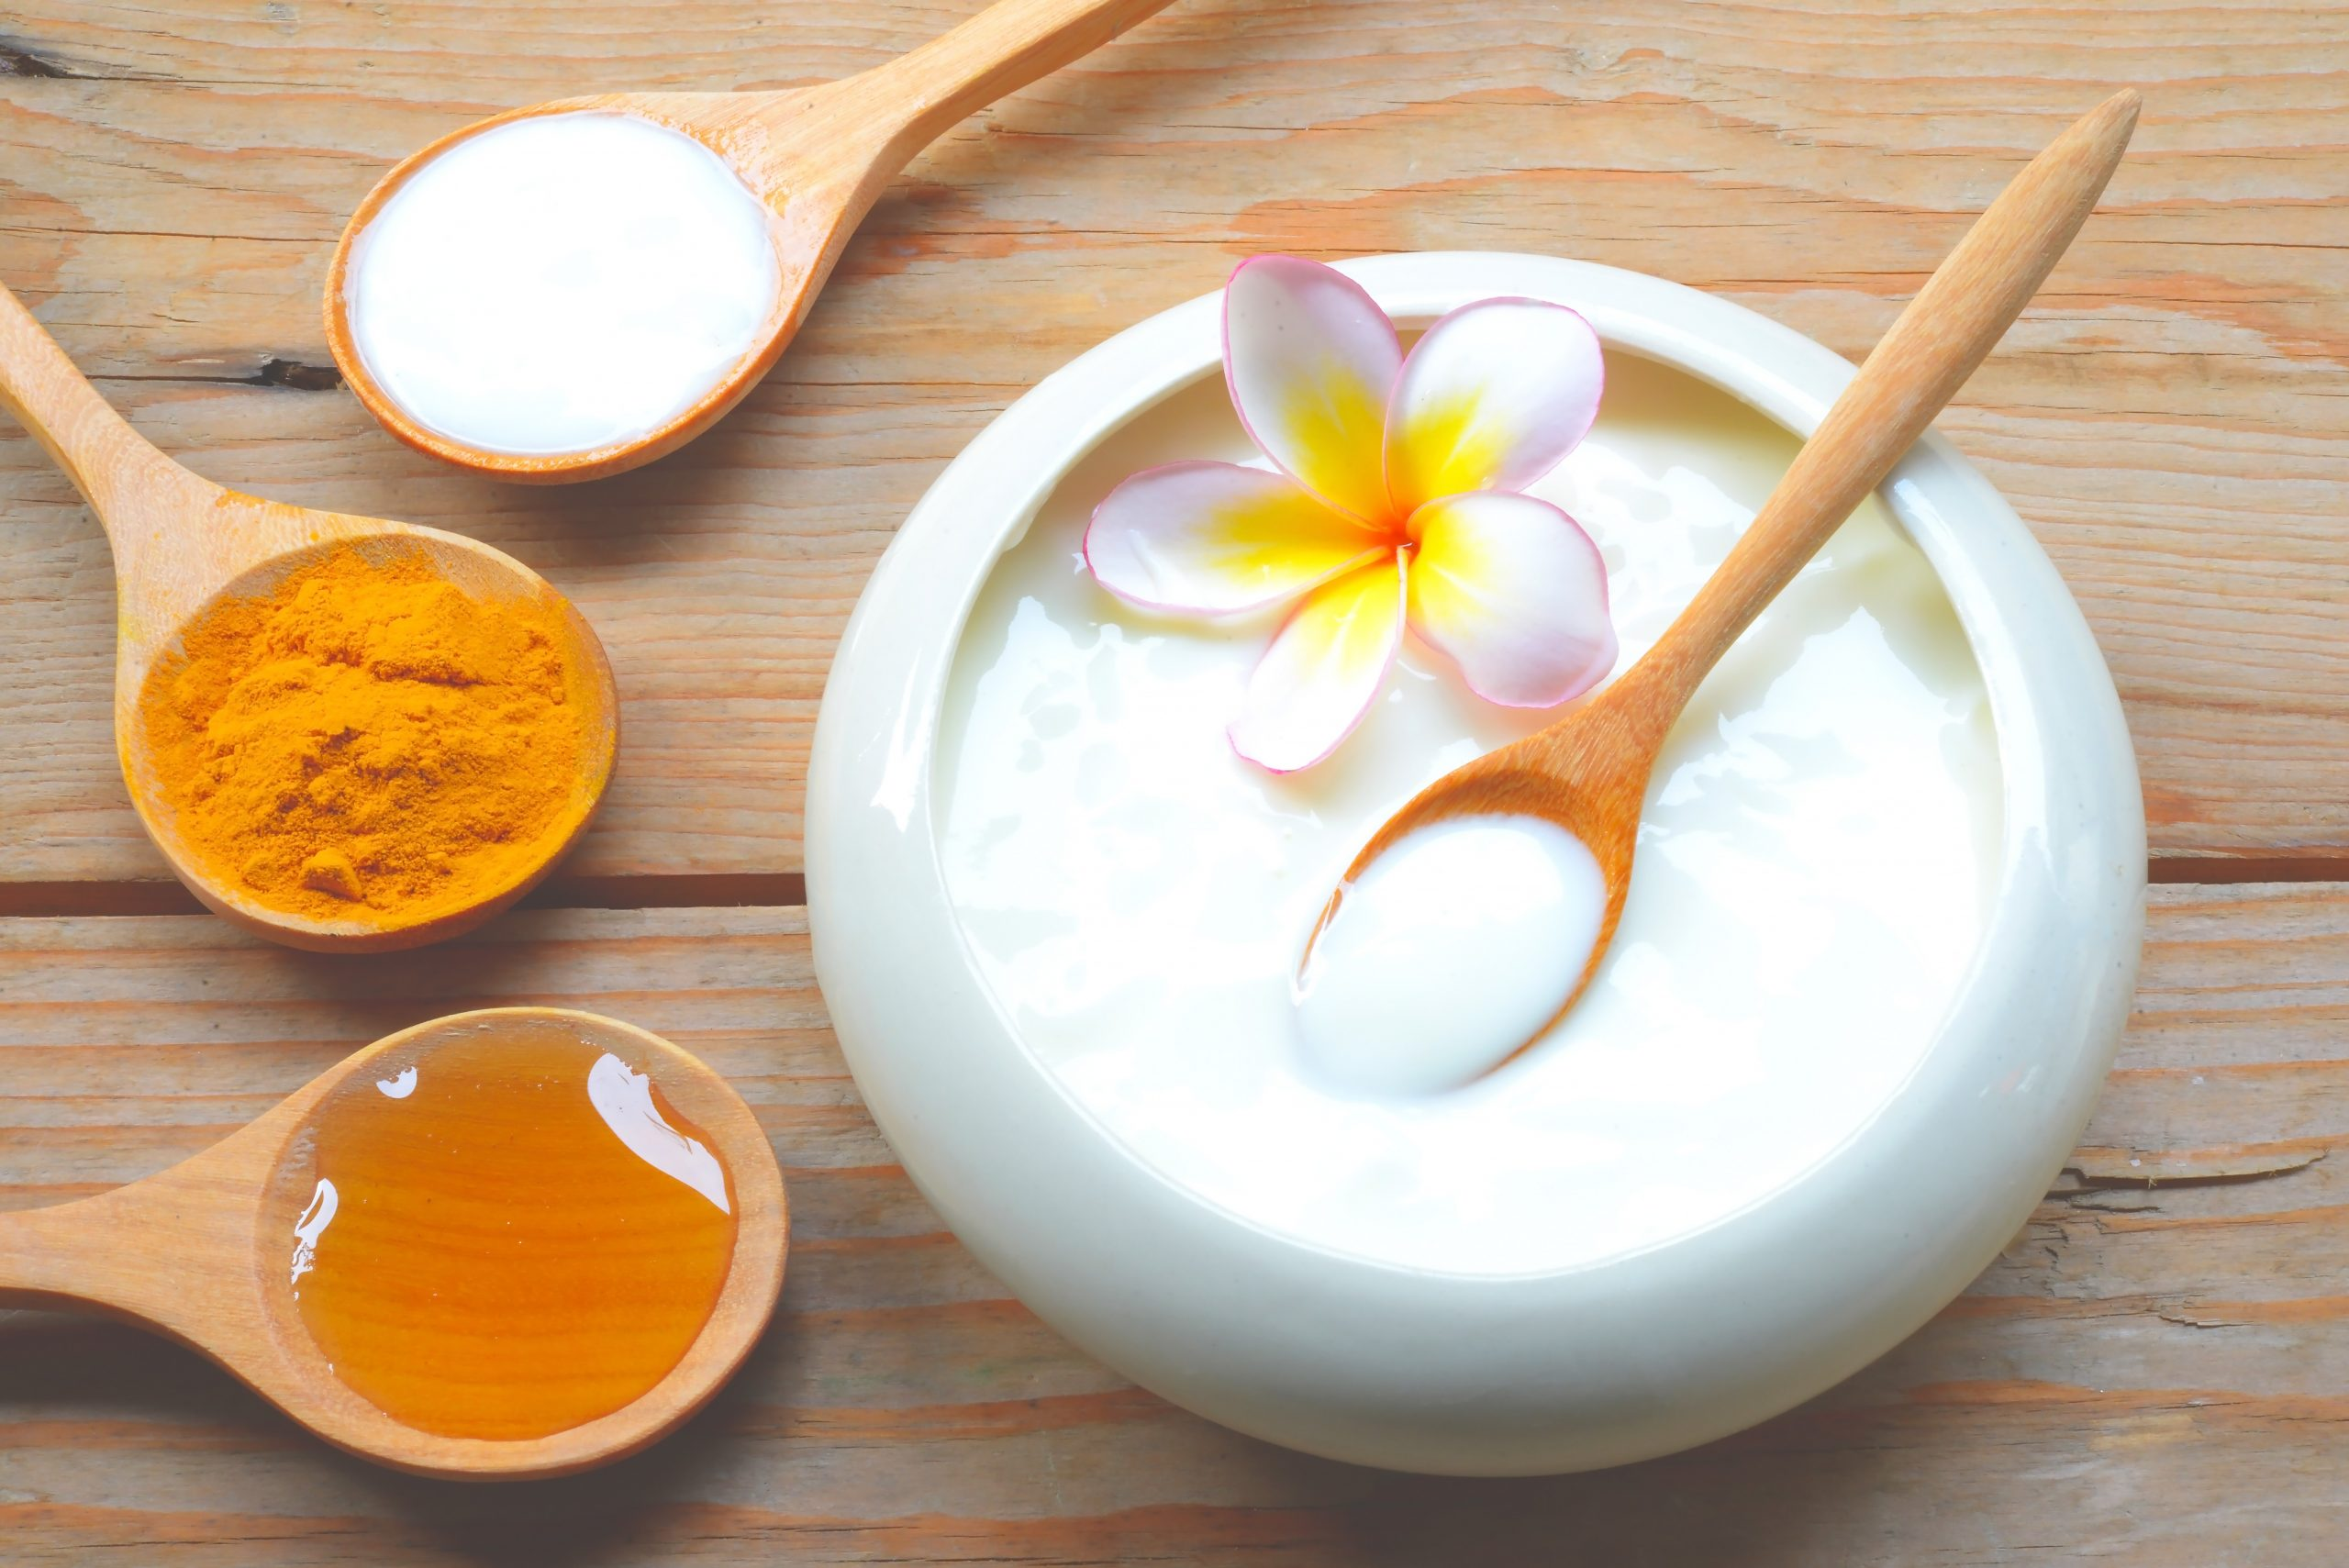 DIY: White Honey Face Mask for Glowing Skin